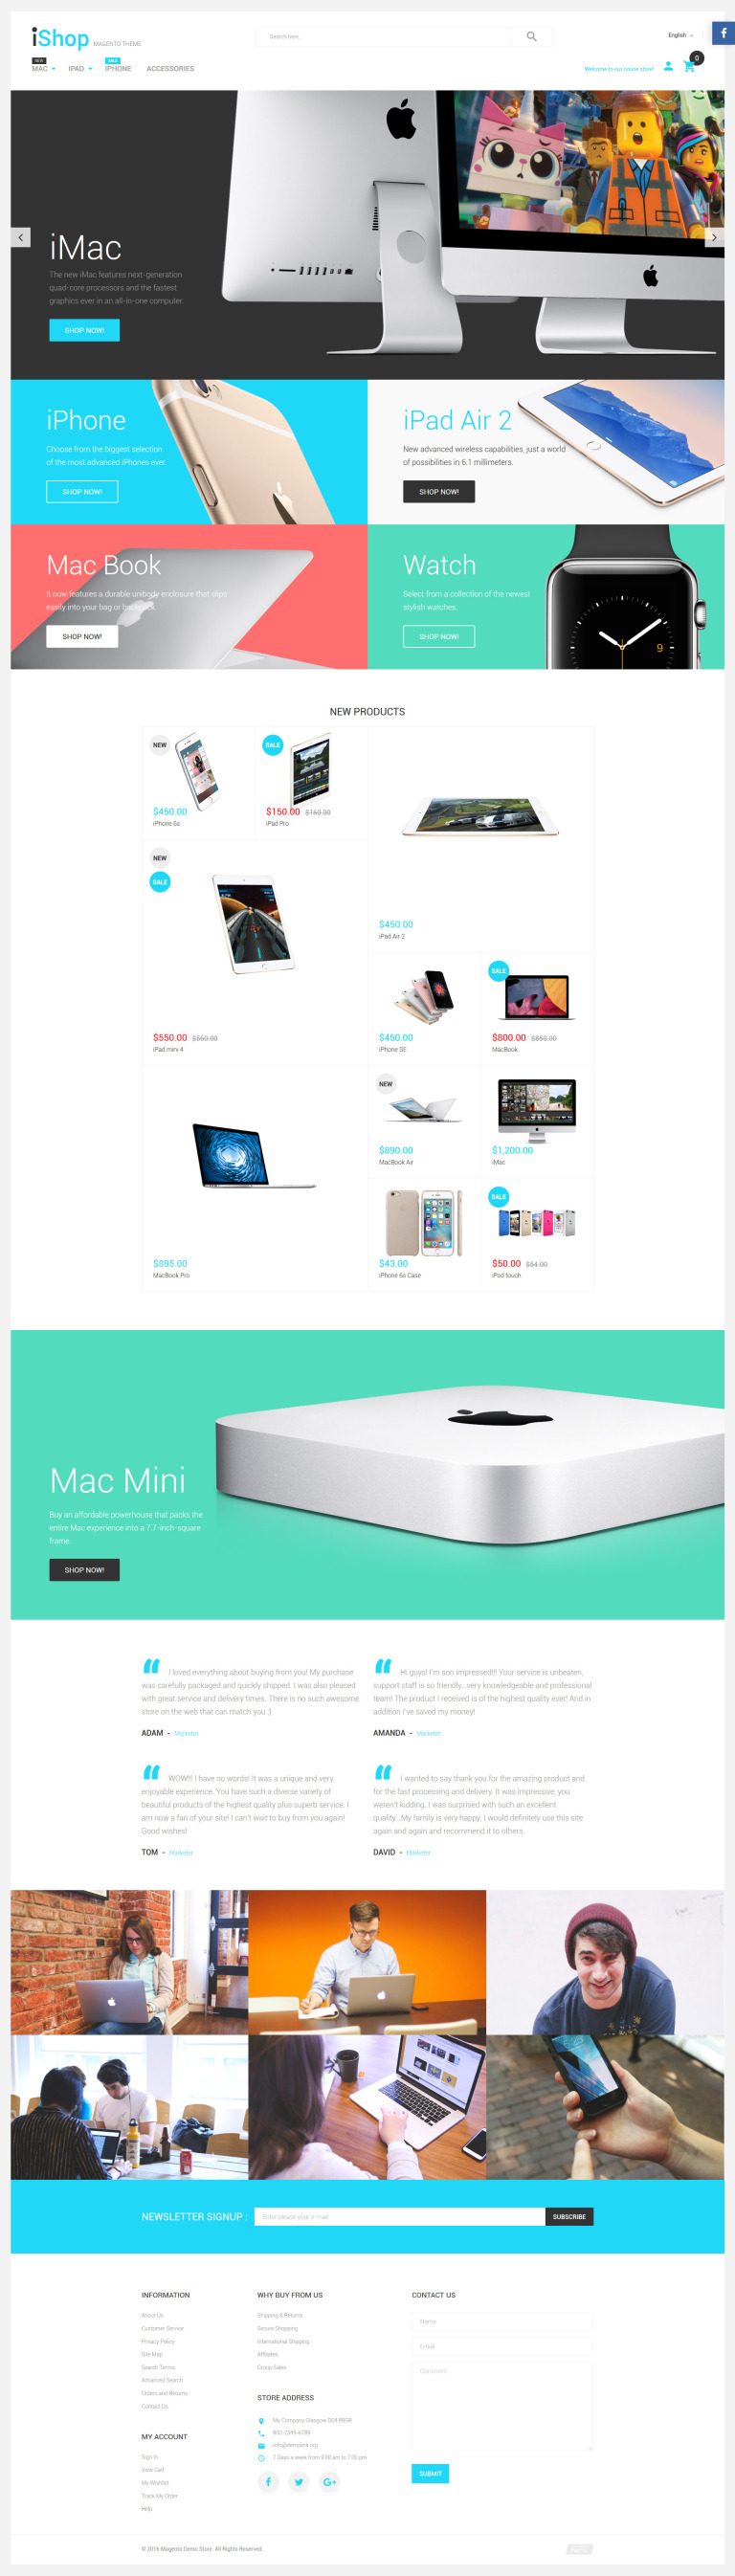 iShop - Electronic Devices Magento Theme New Screenshots BIG